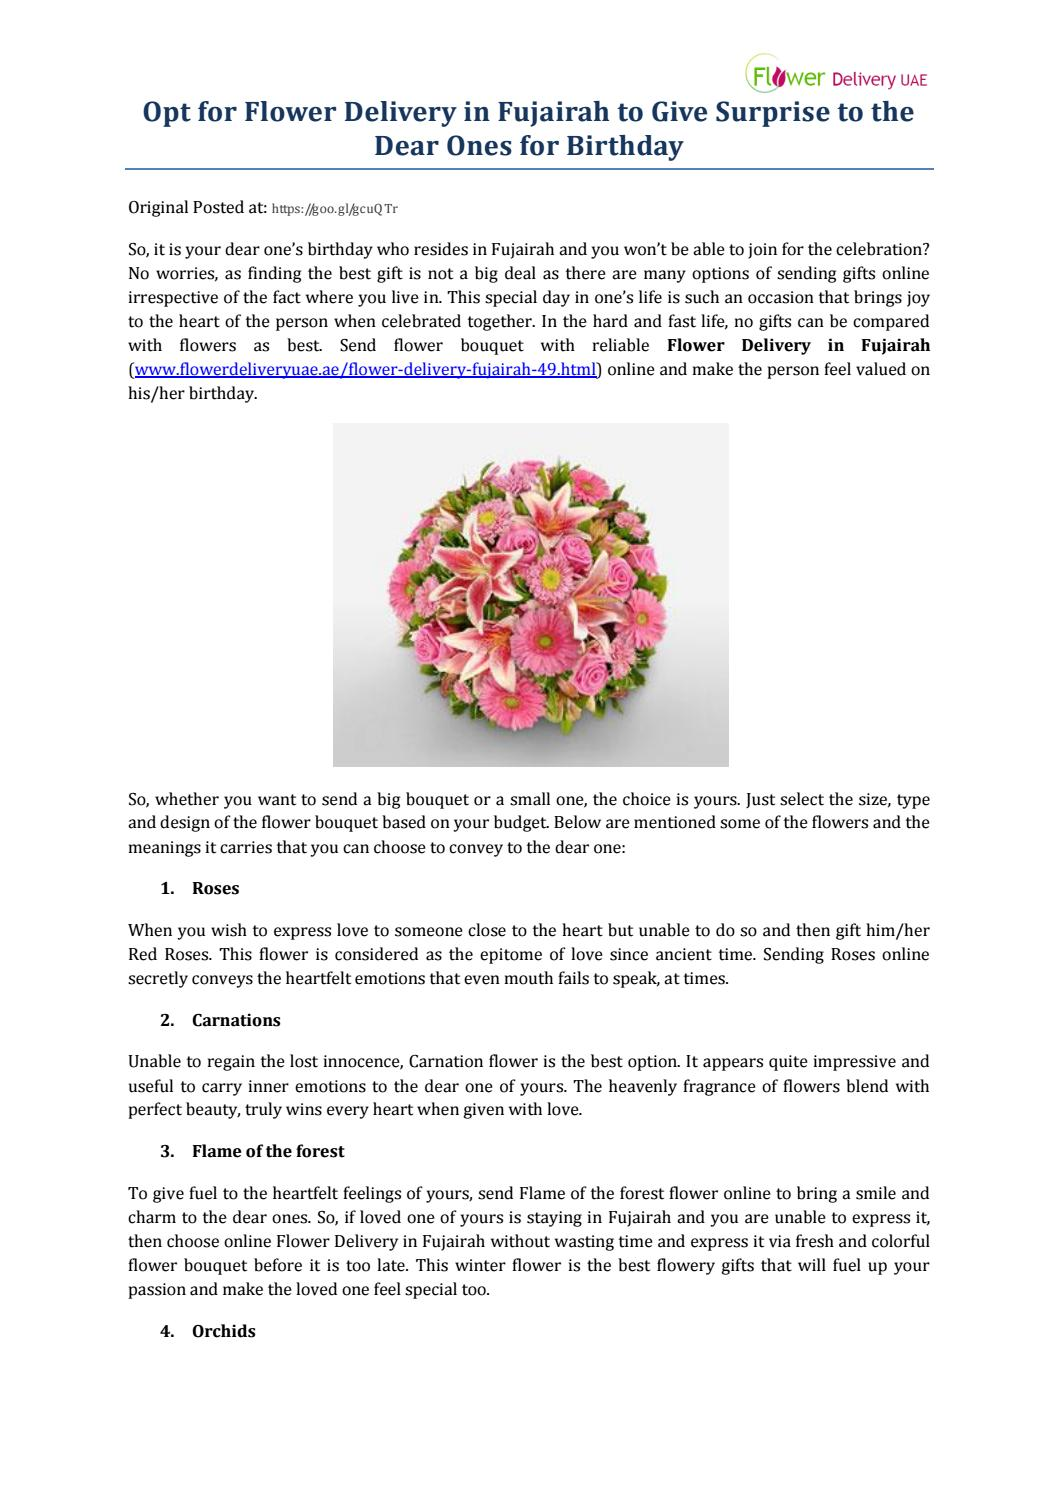 Opt for flower delivery in fujairah to give surprise to the dear opt for flower delivery in fujairah to give surprise to the dear ones for birthday by flower delivery uae issuu izmirmasajfo